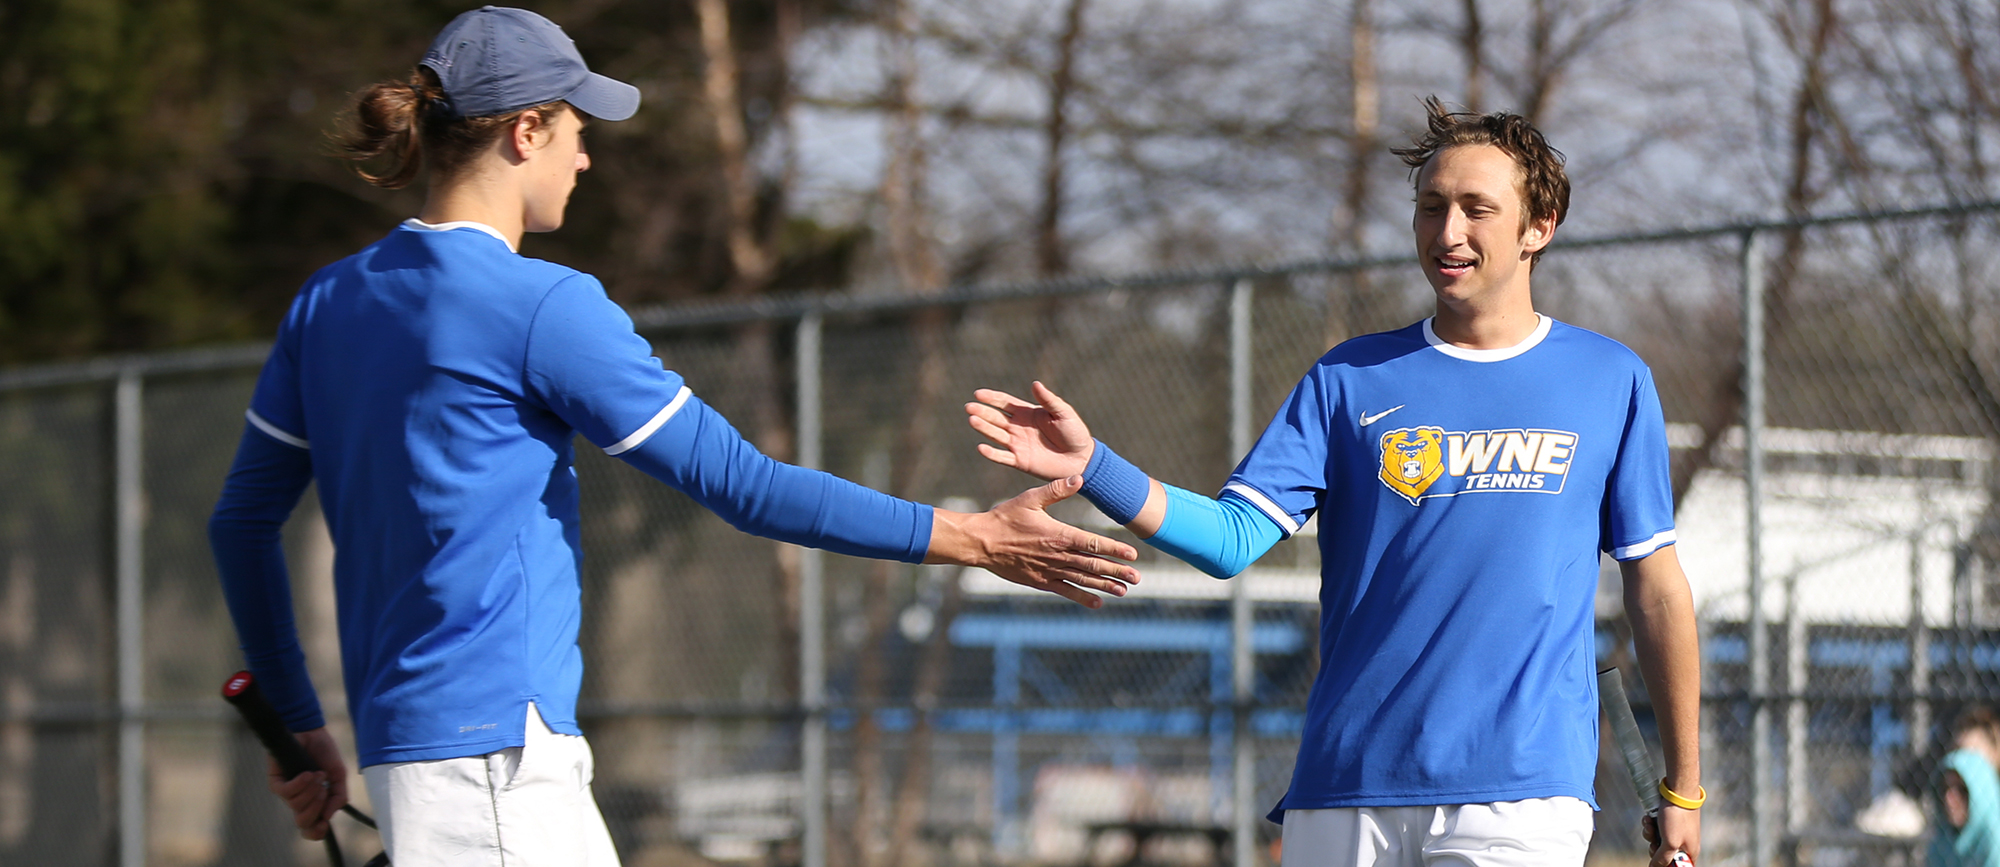 Hippolyte Bonnet & Luke Surawski picked up wins in both singles and doubles play as the Golden Bears defeated Roger Williams on Wednesday to advance to the CCC Championship match. (Photo by Chris Marion)